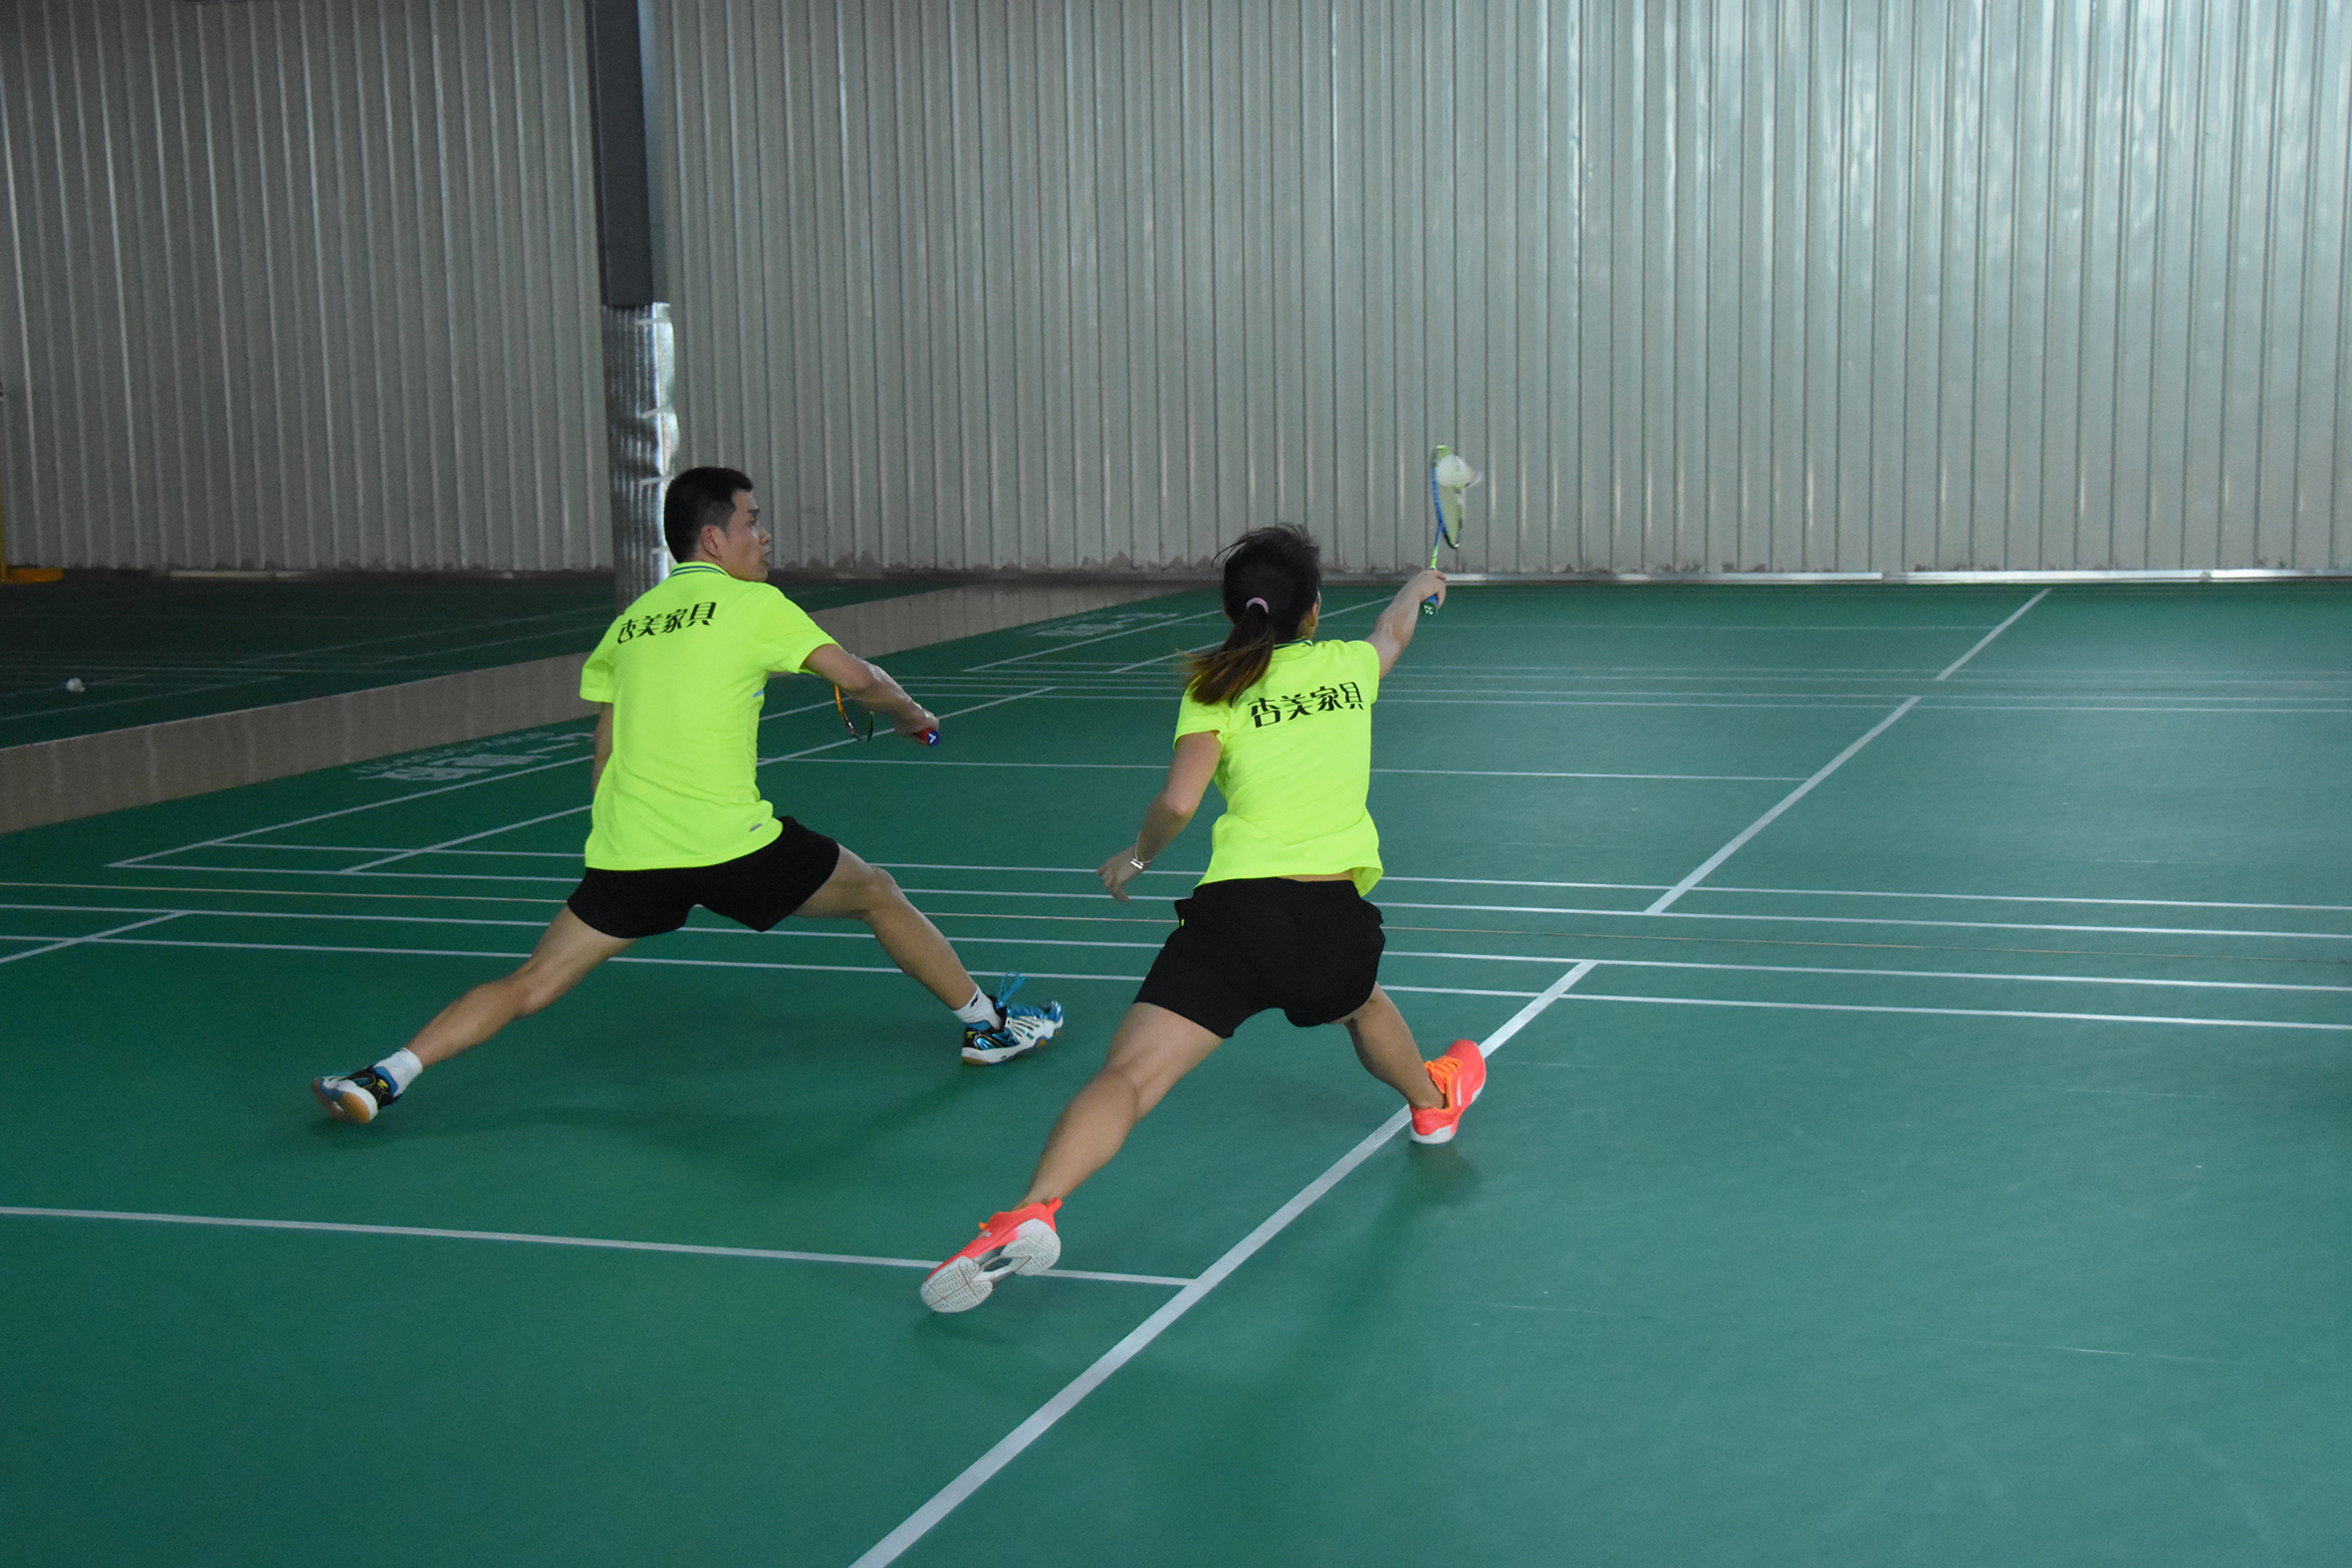 Lunging (with your dominate leg forward) is the most common and important move for badminton. It's also totally killer to practice.